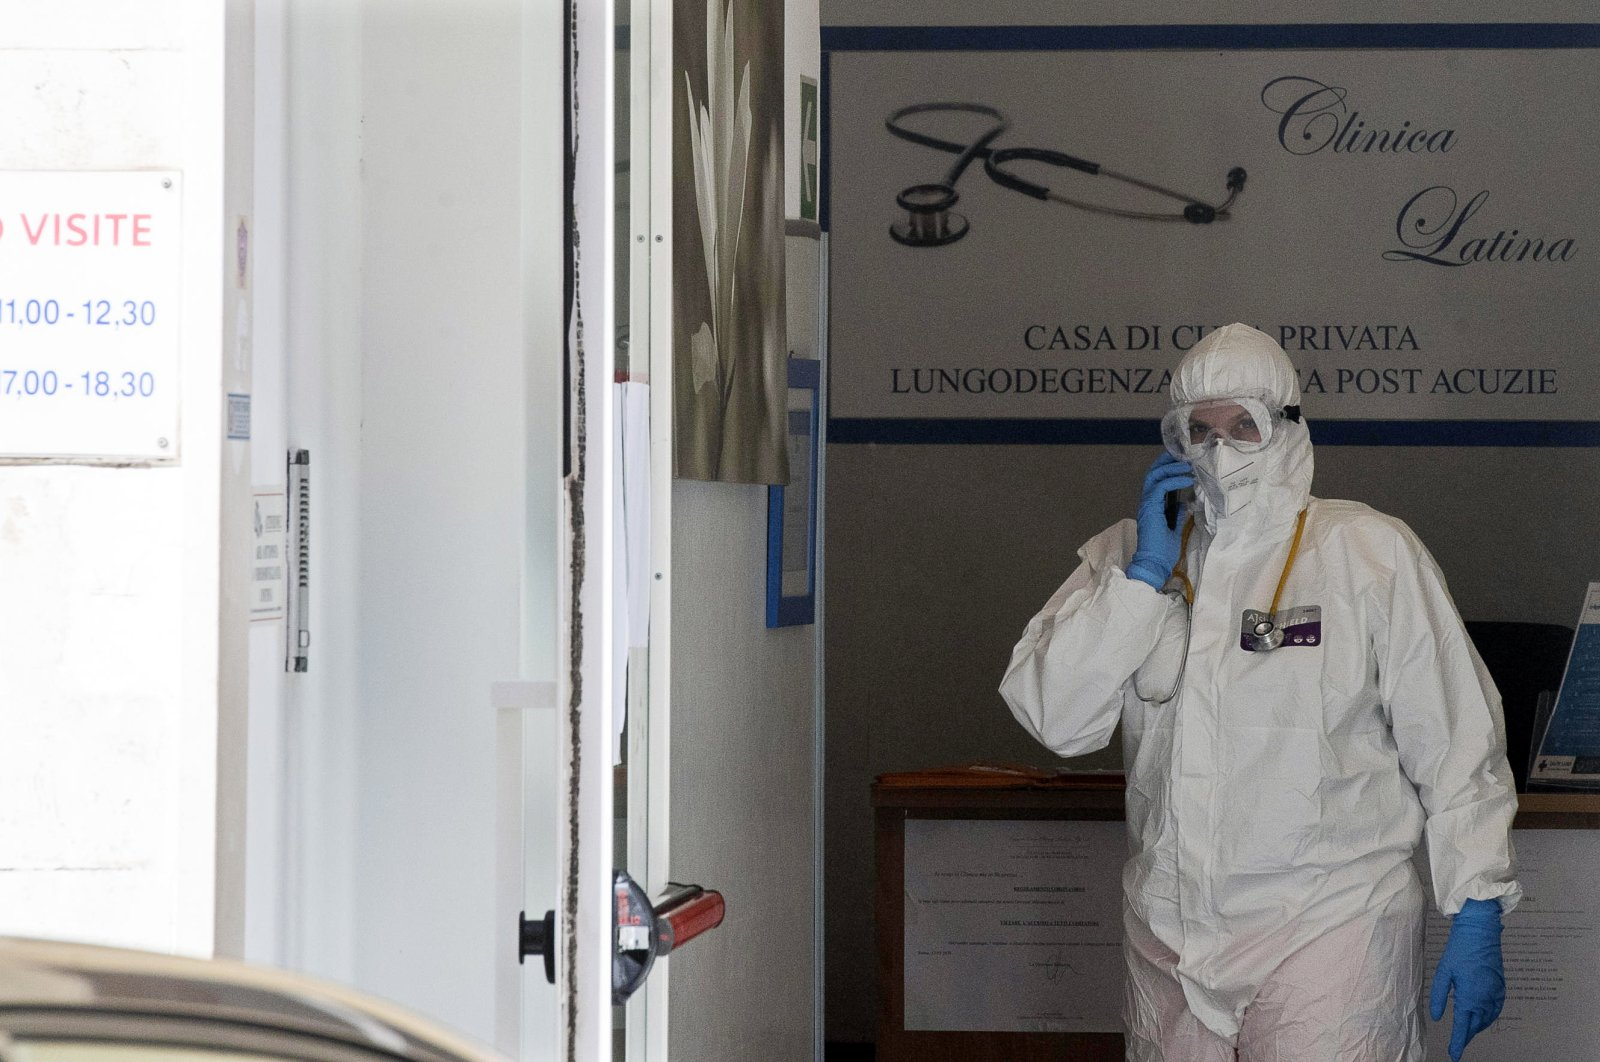 A health specialist wears protective gear at the Latin Clinic in Rome, Italy, 02 May 2020, amid the ongoing coronavirus COVID-19 pandemic. (EPA Photo)